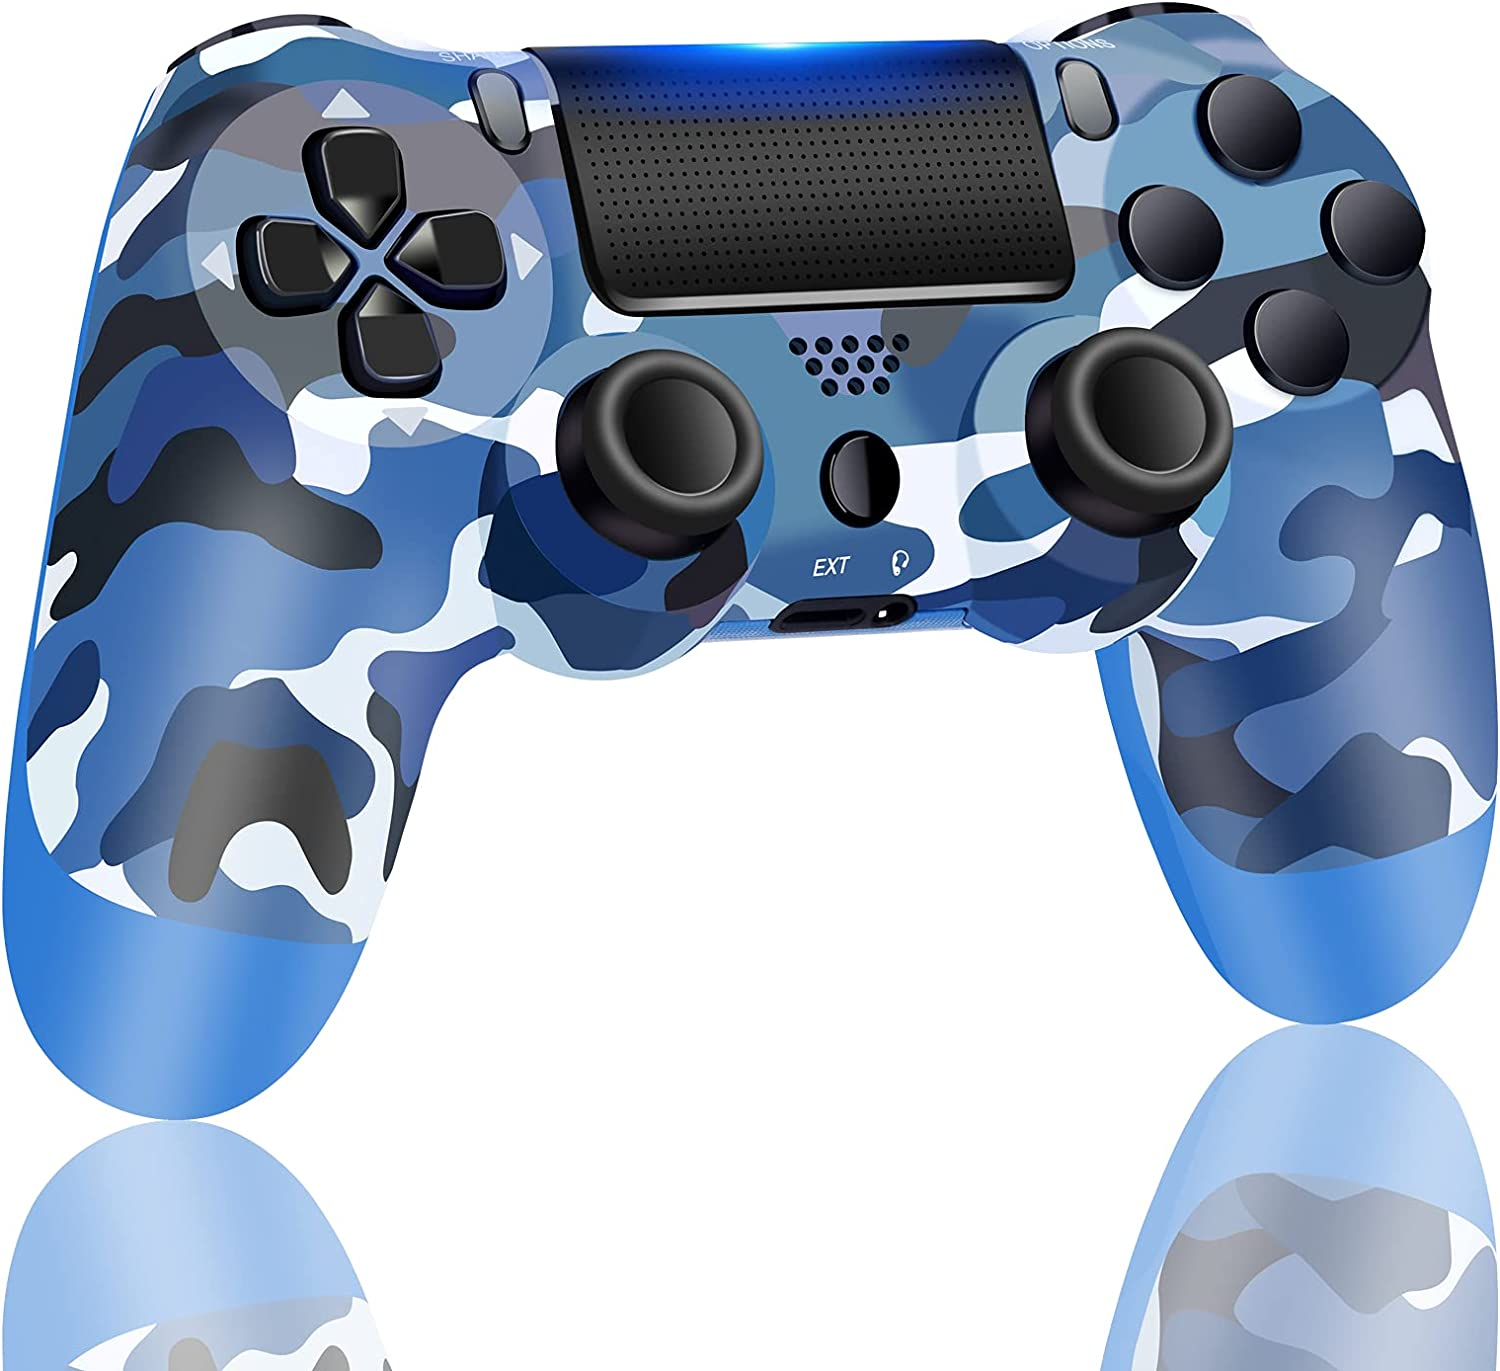 AUGEX Remote Compatible for PS4 Controller, Wireless Controller Work with Playstation 4,with Two Vibration/Stereo Headset Jack/Touch Pad Control,Remote Compatible with PS4/Slim/Pro Console (Navy Blue)